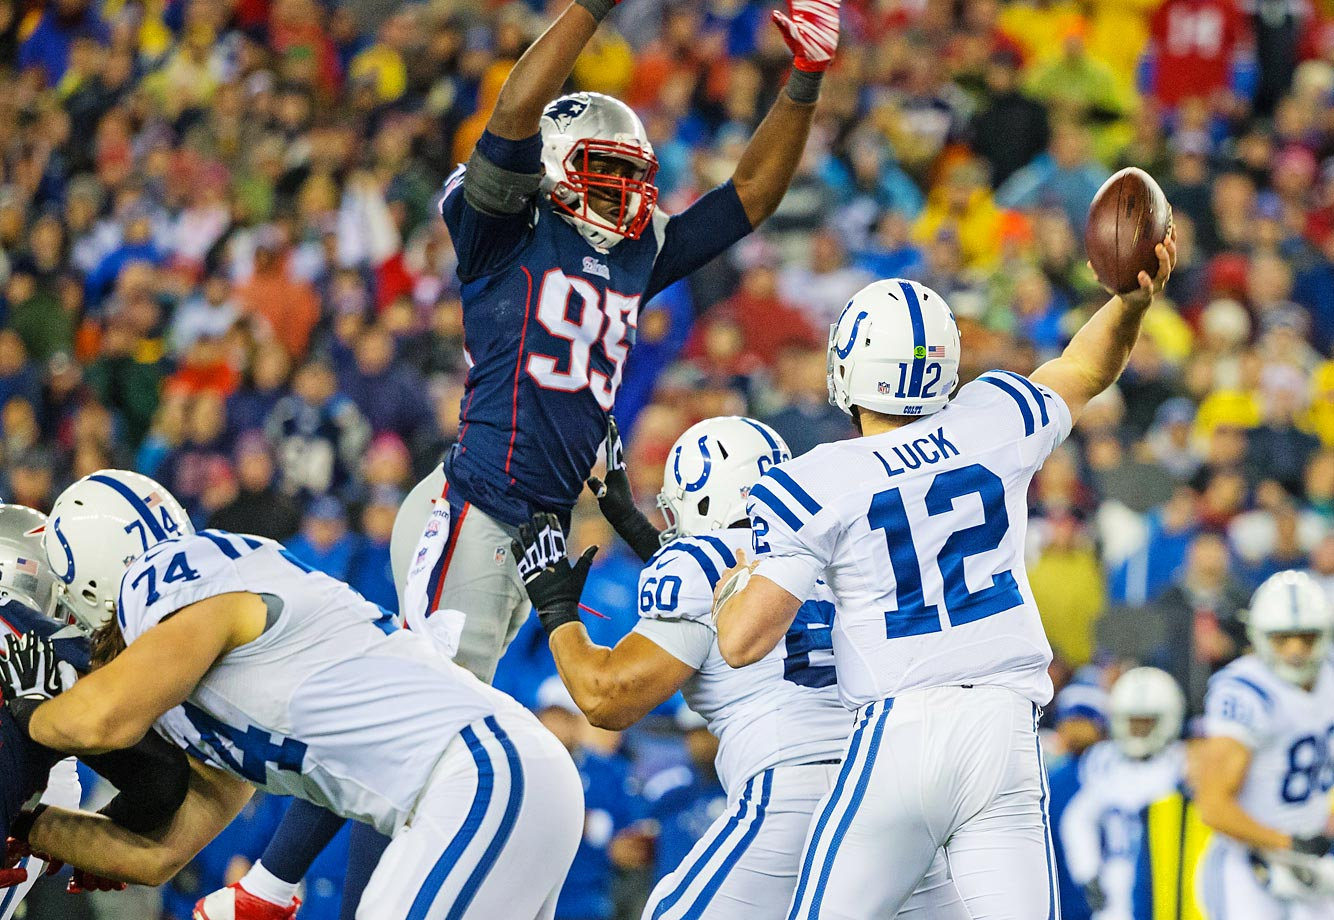 New England Patriots defensive end Chandler Jones (95) tries to bat down a pass from Indianapolis Colts quarterback Andrew Luck (12)                   during the AFC Championship Game at Gillette Stadium.